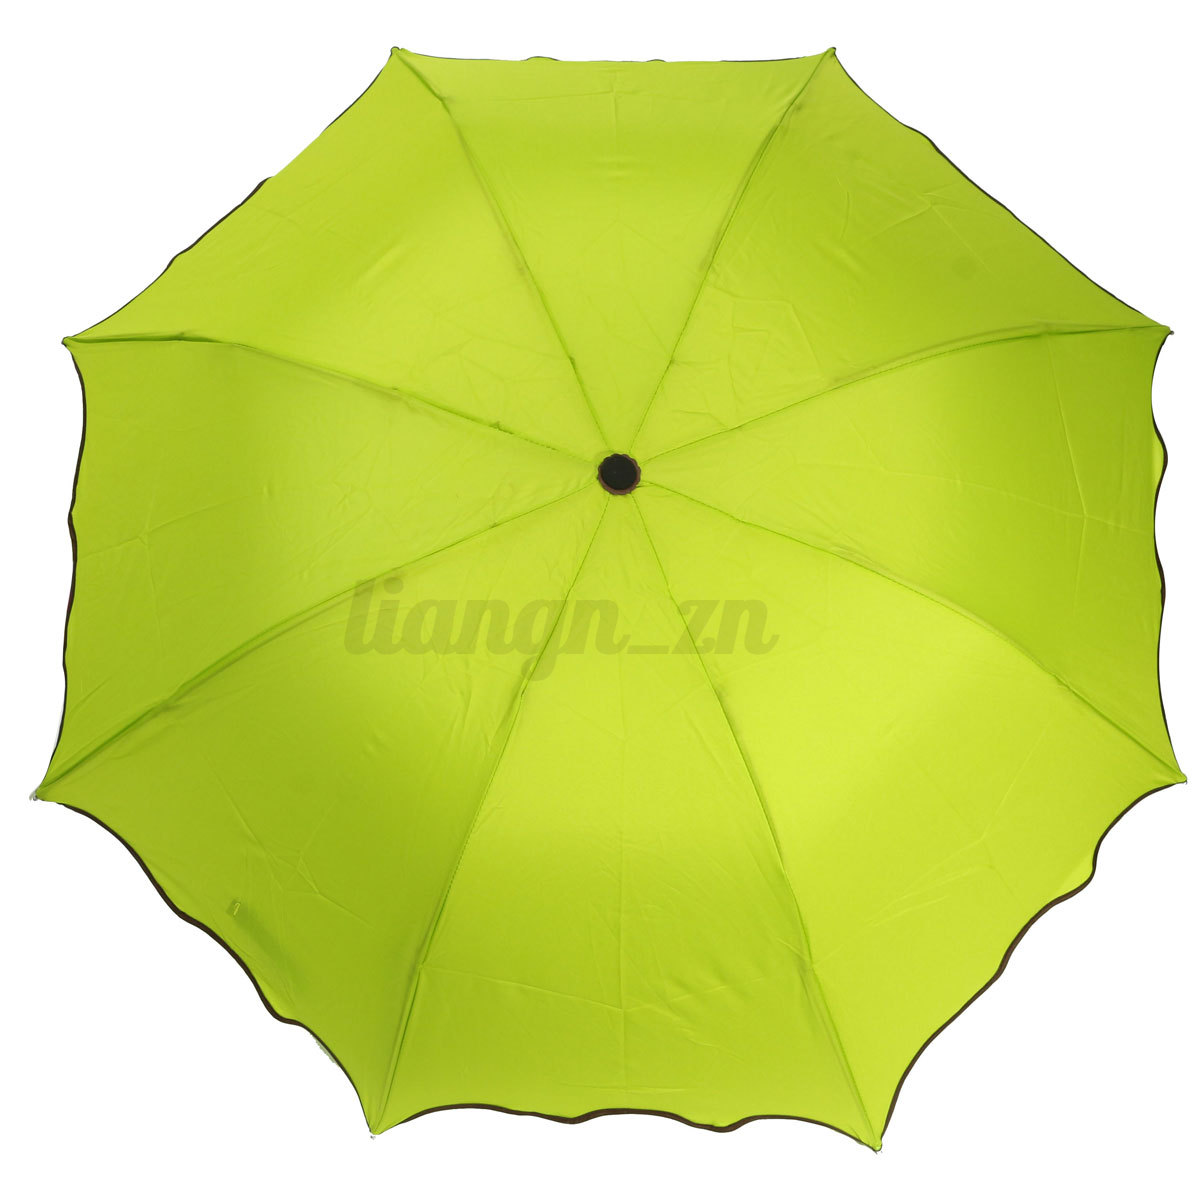 uv vent soleil parapluie parasol ombrelle femme pliant umbrella protection ebay. Black Bedroom Furniture Sets. Home Design Ideas